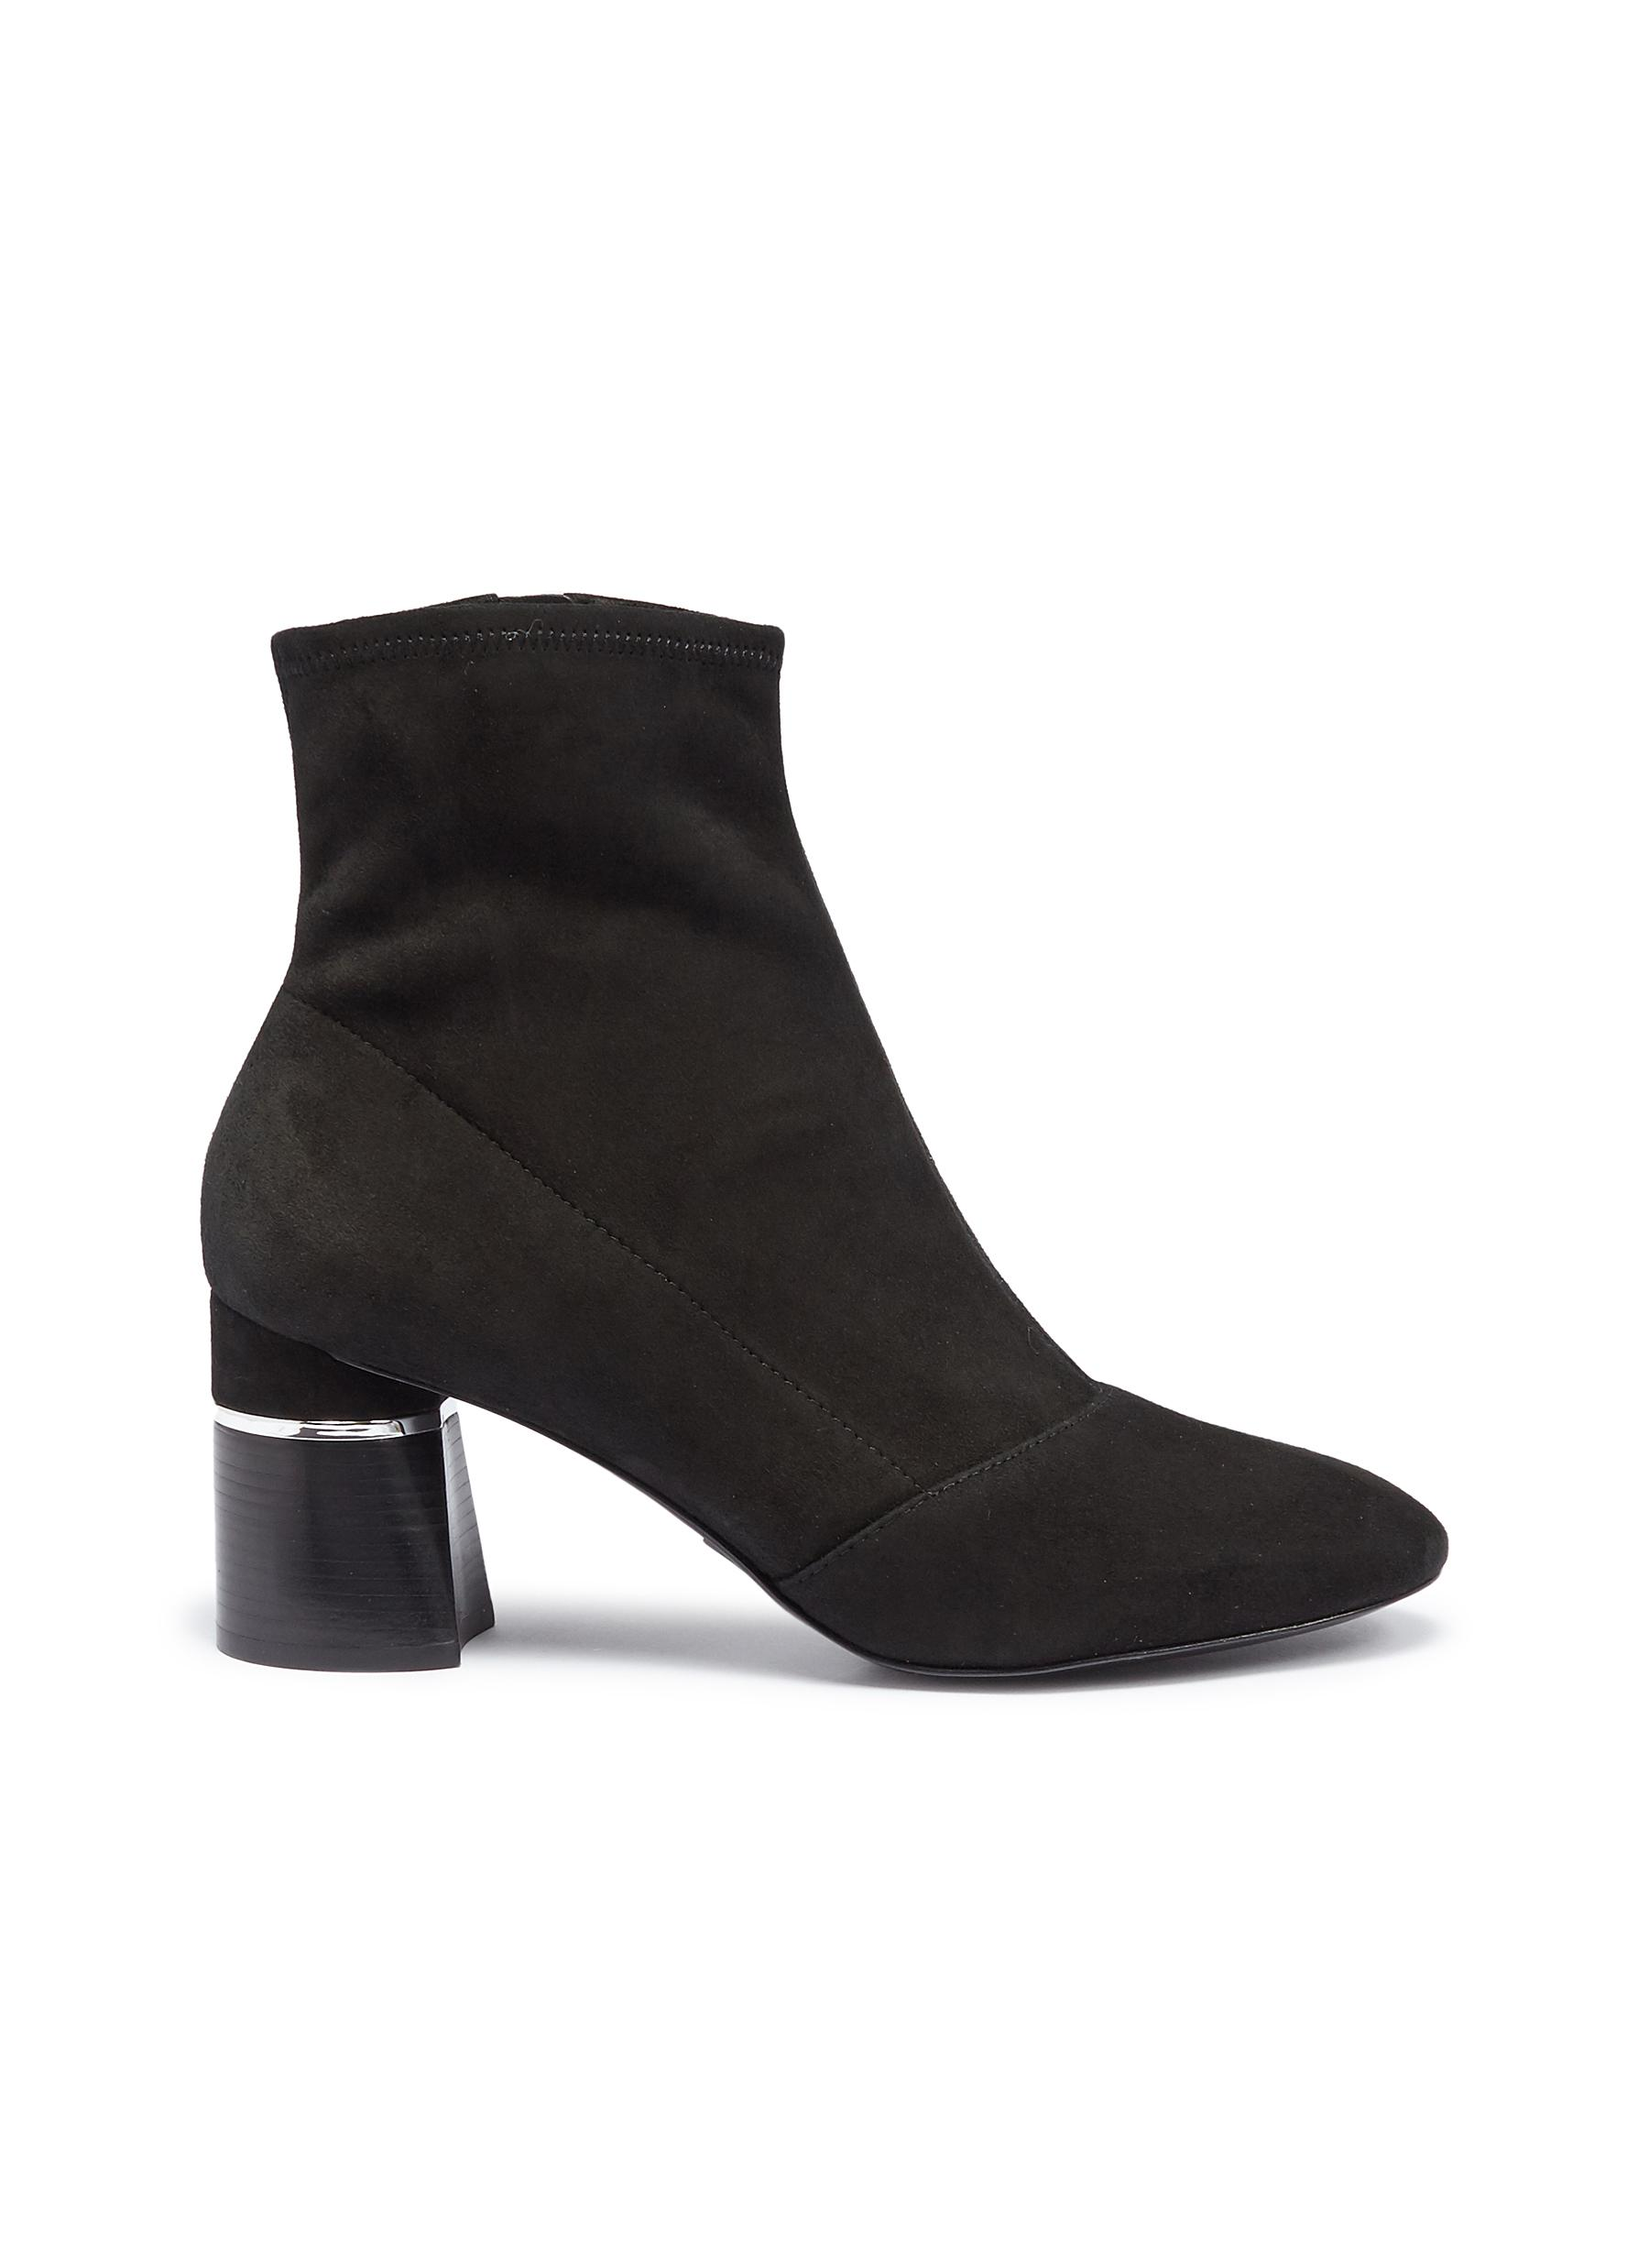 Drum suede ankle boots by 3.1 Phillip Lim